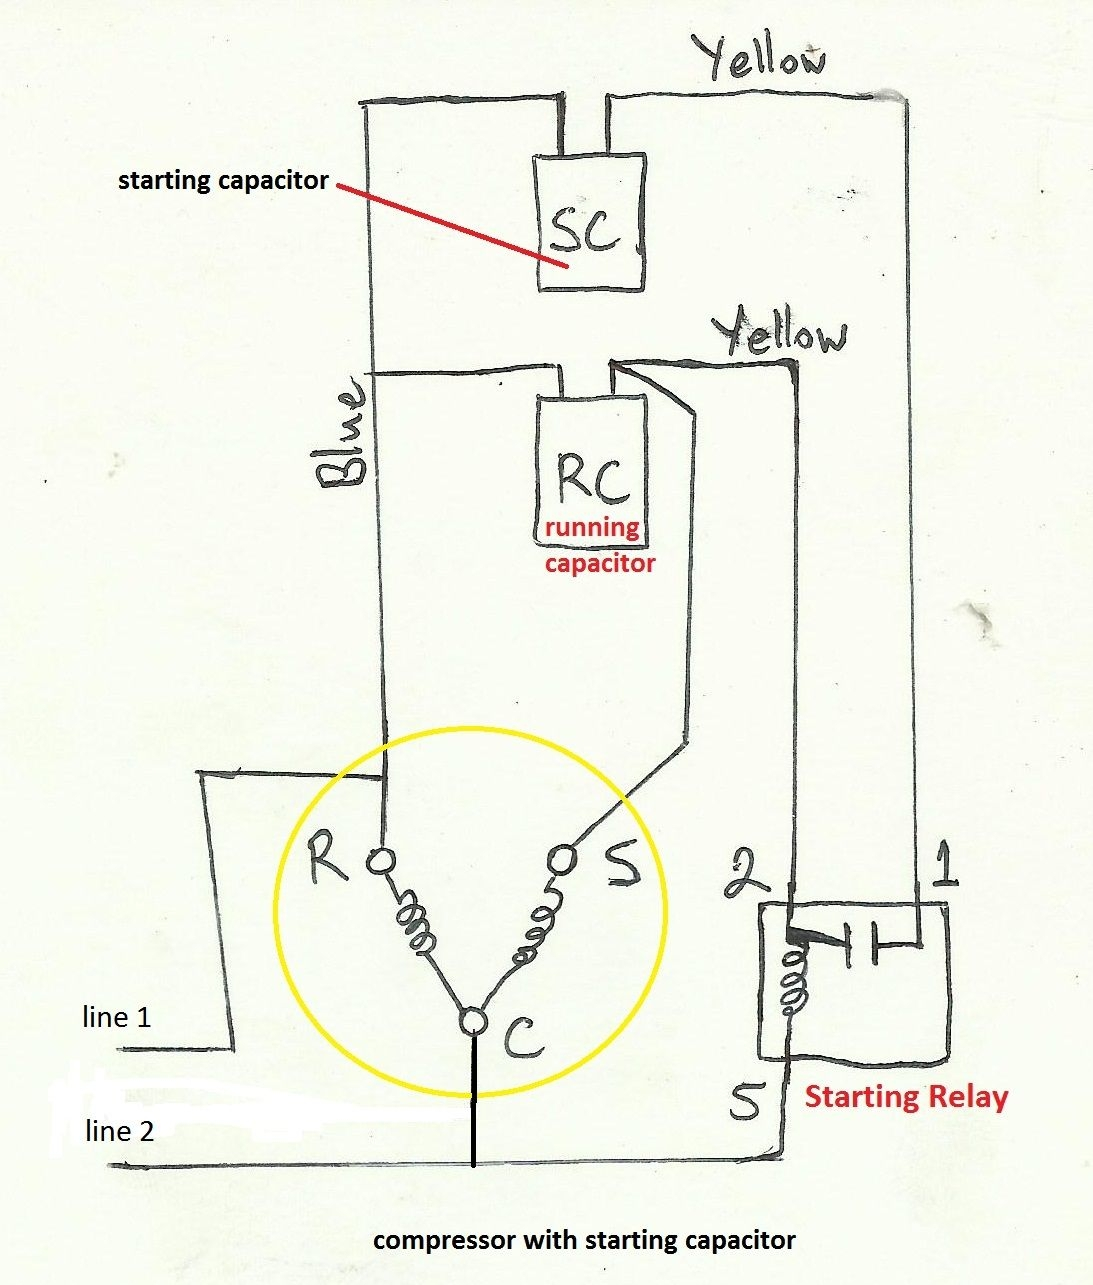 Baldor Electric Motor Capacitor Wiring | Wiring Diagram Database on ao smith electric motors wiring diagrams, emerson electric motors wiring diagrams, 3 phase electric motor diagrams, baldor connection diagram, baldor motor model, delta electric motor wiring diagrams, baldor 220 volt wiring diagram, baldor motor schematic, baldor industrial motor, marathon electric motor wiring diagrams, baldor motor capacitor chart, baldor motor parts diagram, baldor vfd wiring diagram, baldor wiring-diagram 56c 115 230, baldor grinder wiring-diagram, single phase capacitor motor diagrams, toshiba electric motor wiring diagrams, baldor single phase motor wiring, electric fan motor wiring diagrams, general electric motor wiring diagrams,